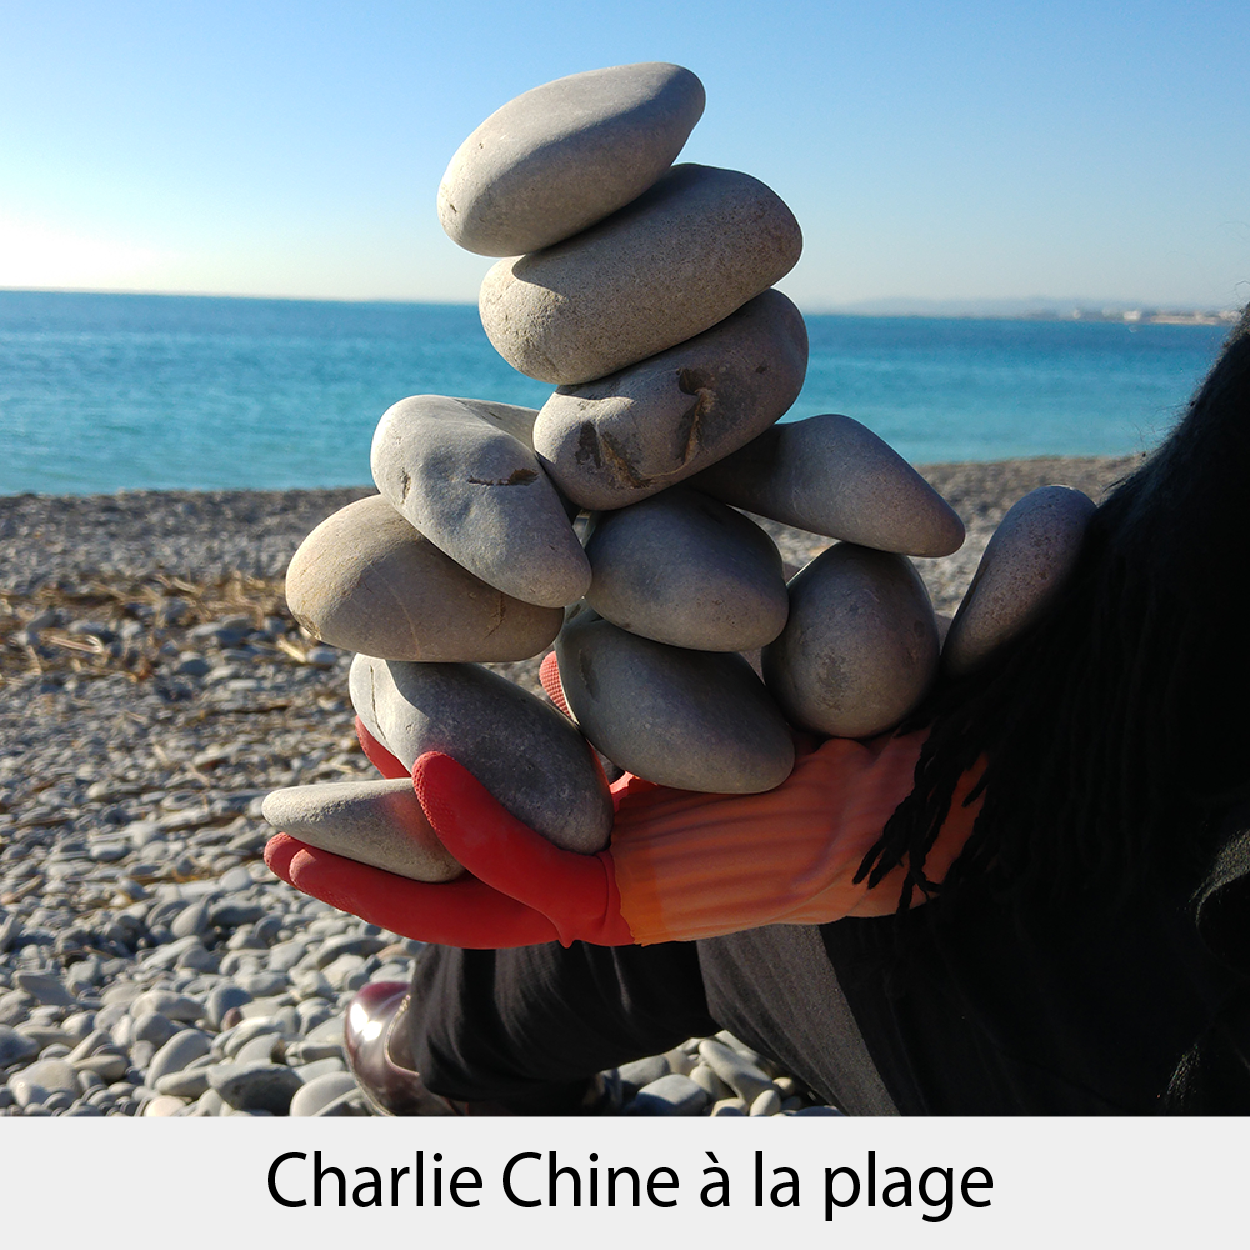 charliechine_alaplage_format_carre-01